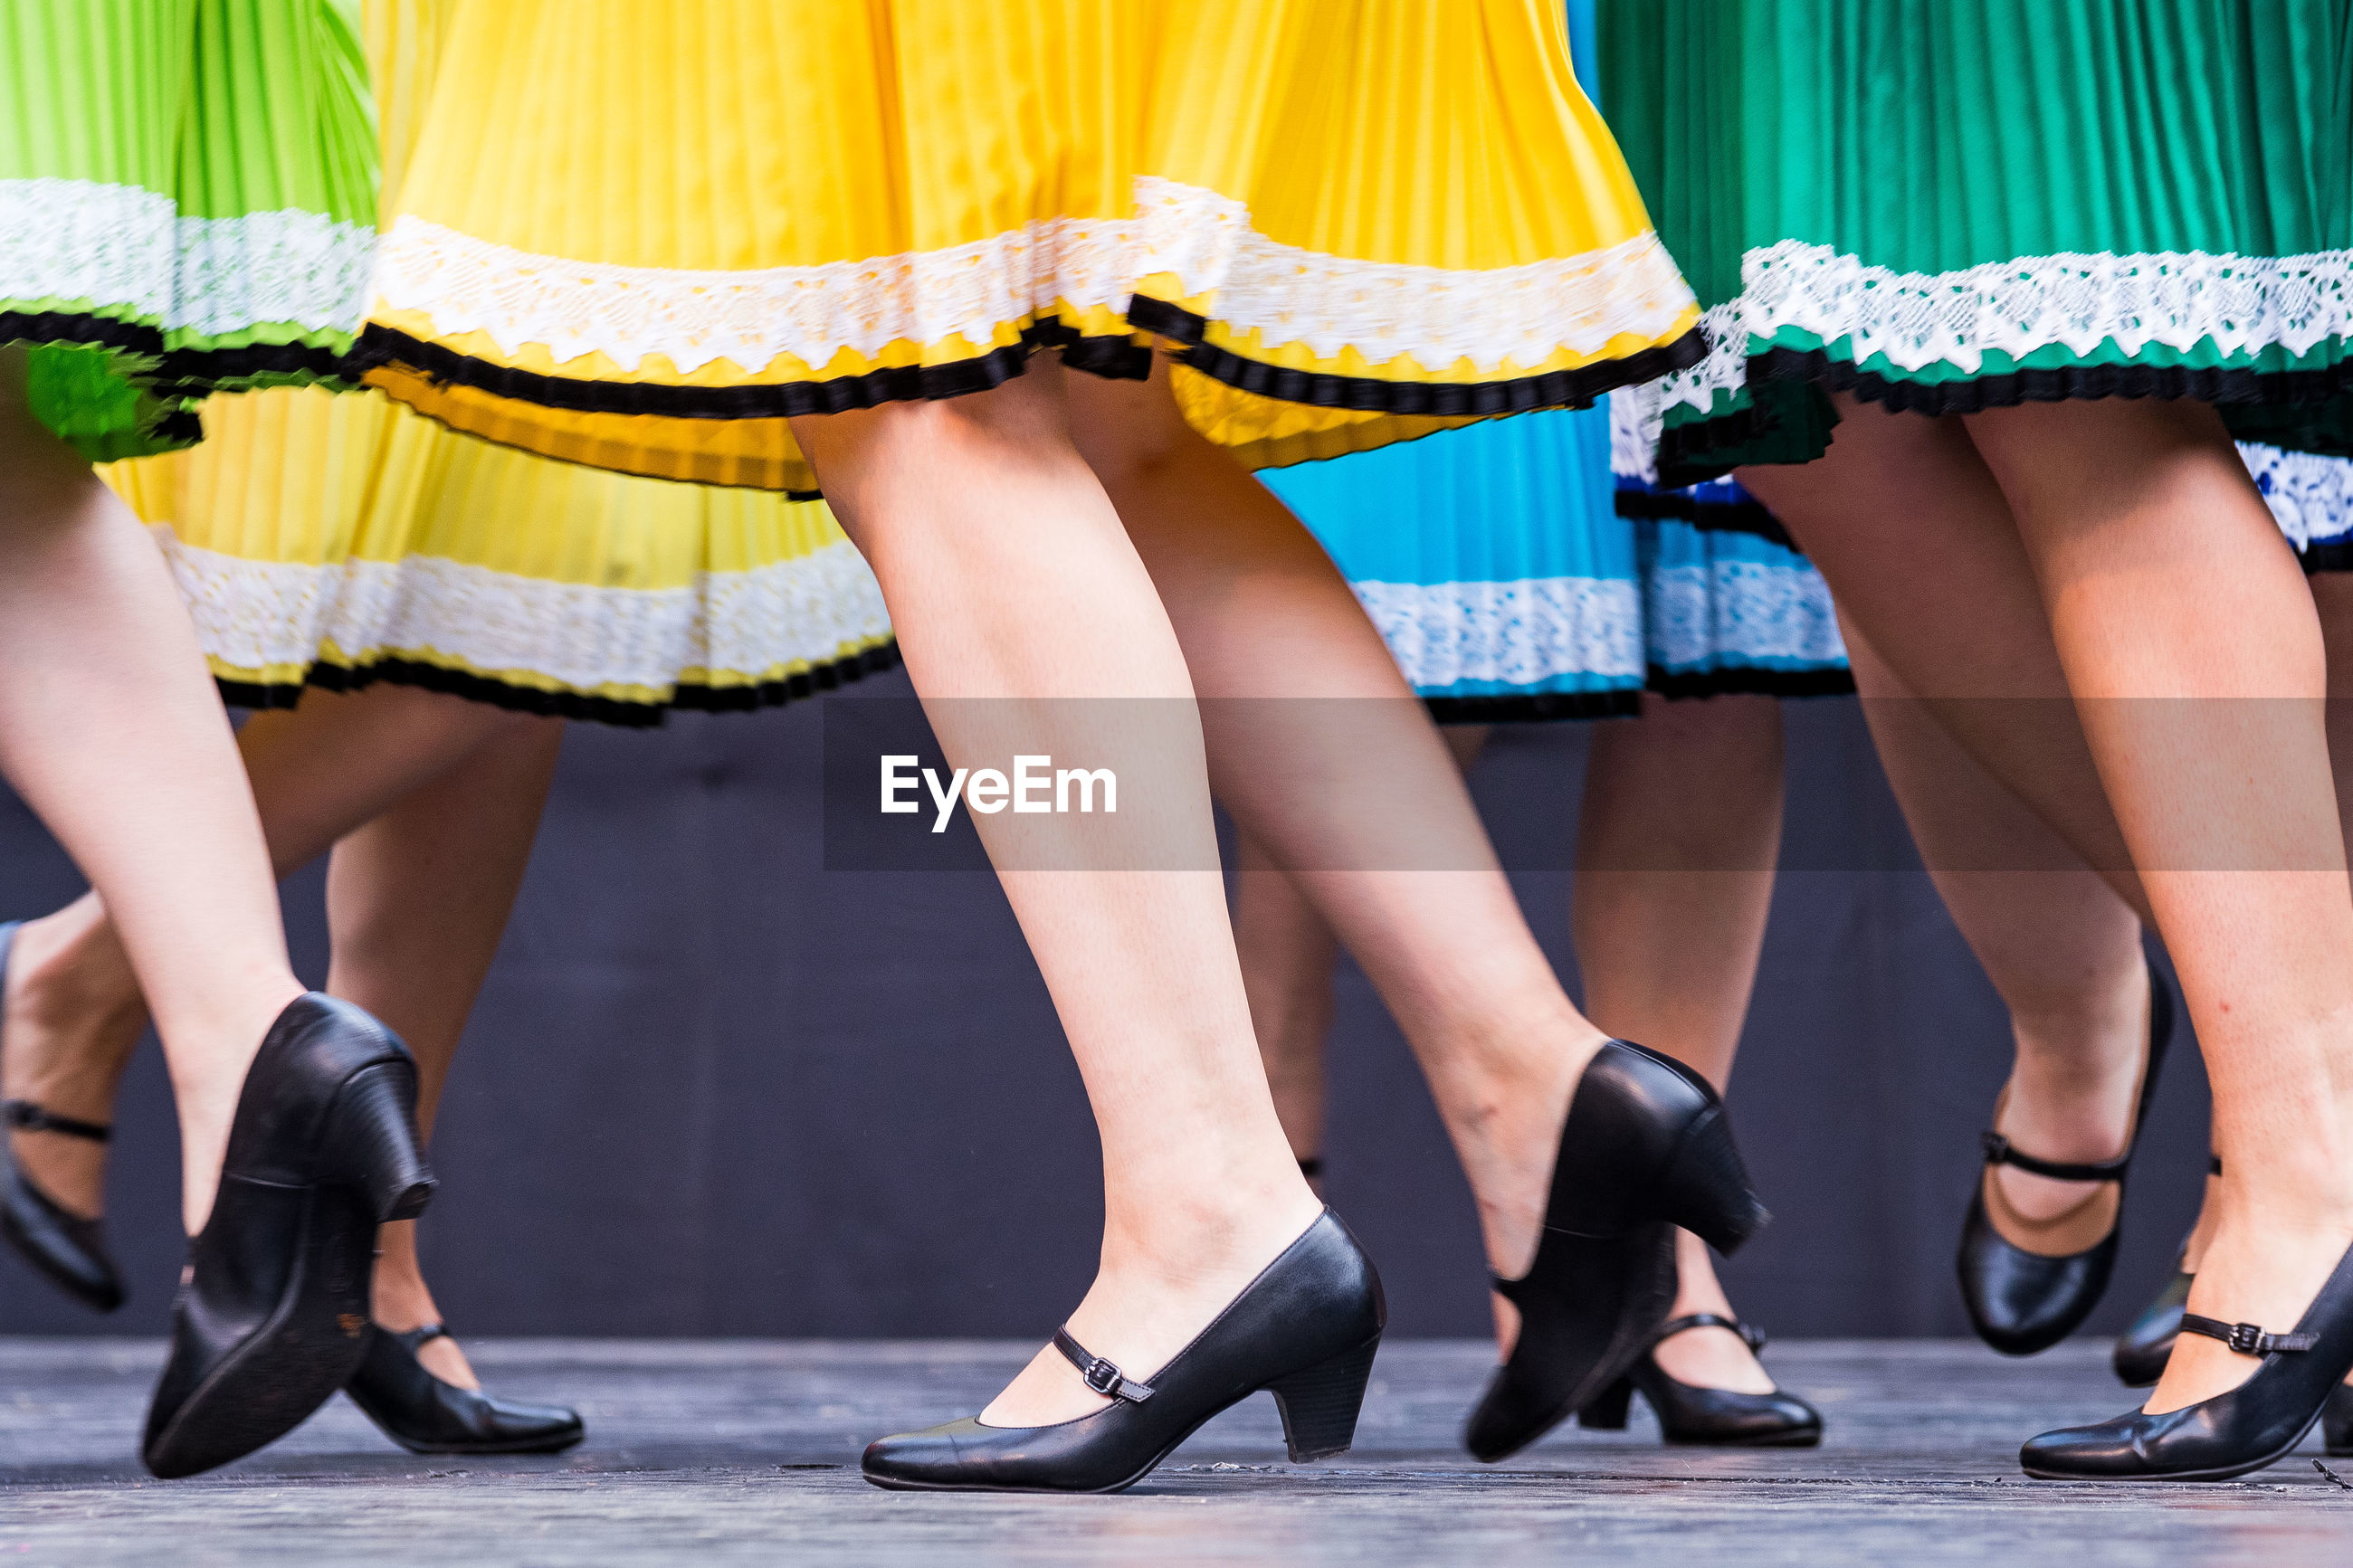 Low section of women in skirts walking on footpath